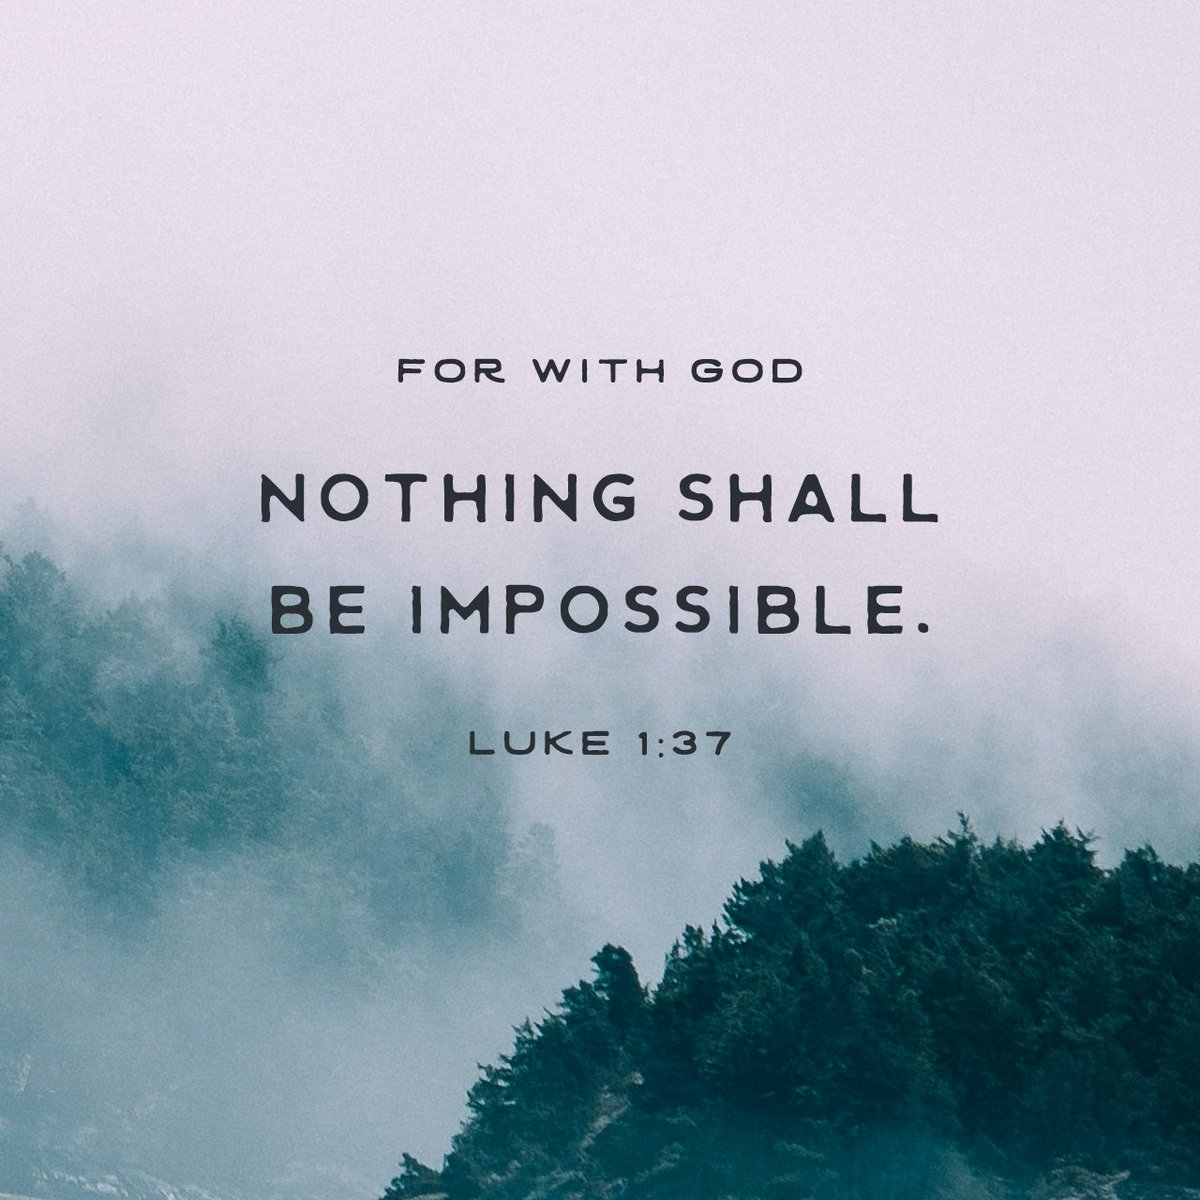 For with God nothing shall be impossible. https://t.co/CTmPnouB4A https://t.co/DrKYXi8EMU